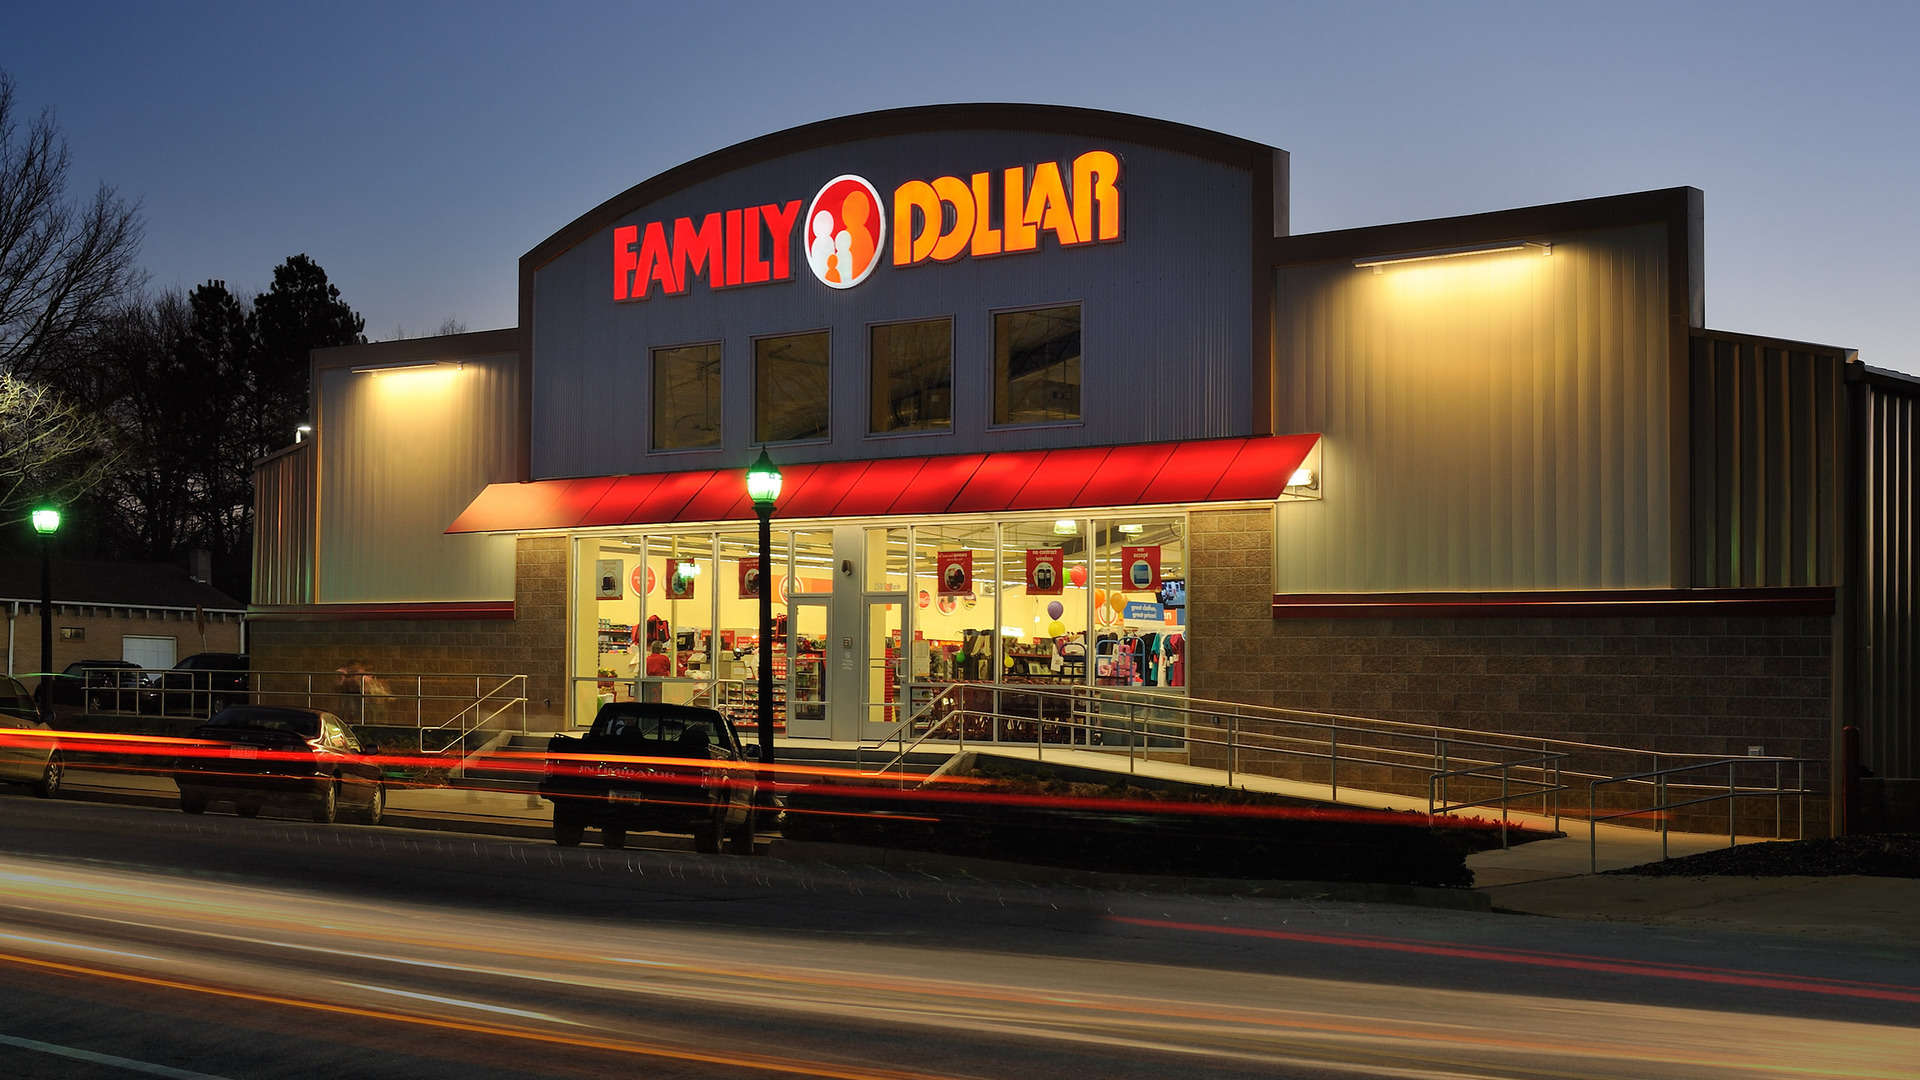 Commercial interior architectural design photographers - Interiors by design family dollar ...